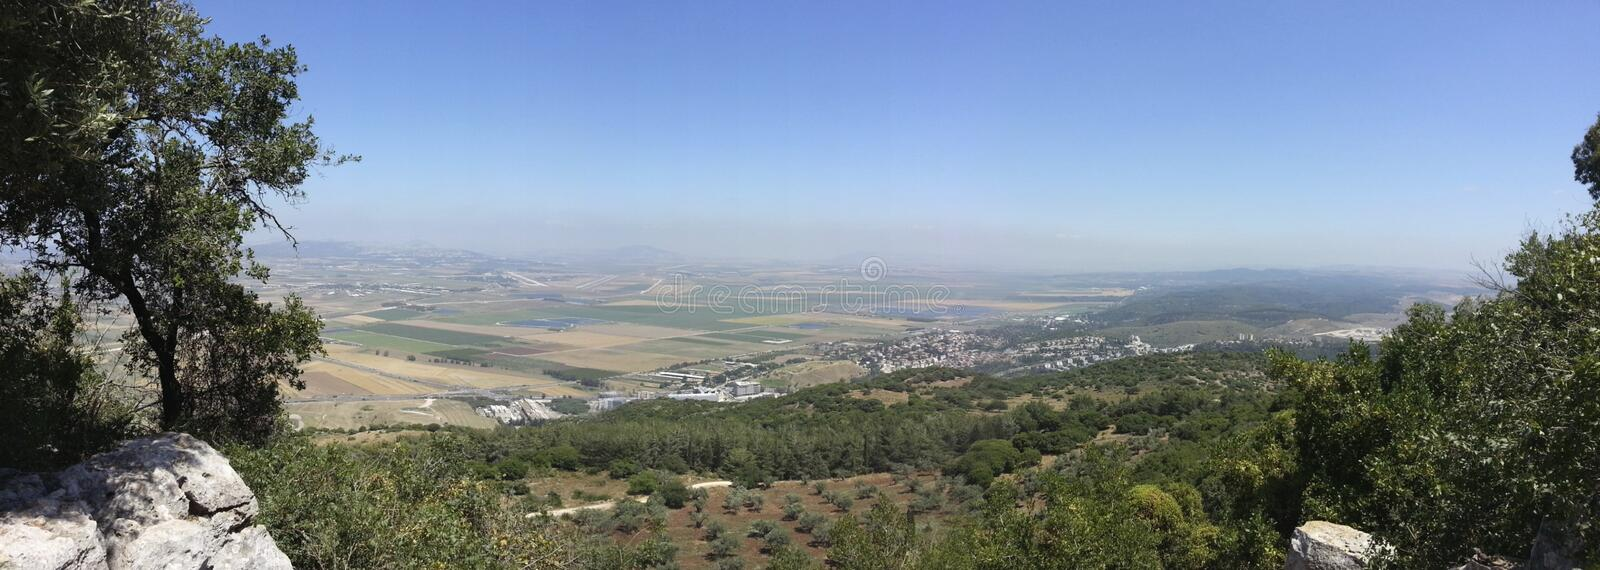 The Jezreel Valley. This view of the Jezreel Valley a.k.a. The Valley of Megiddo, a.k.a. The Valley of Armageddon was taken from the summit of Mt. Carmel near stock images